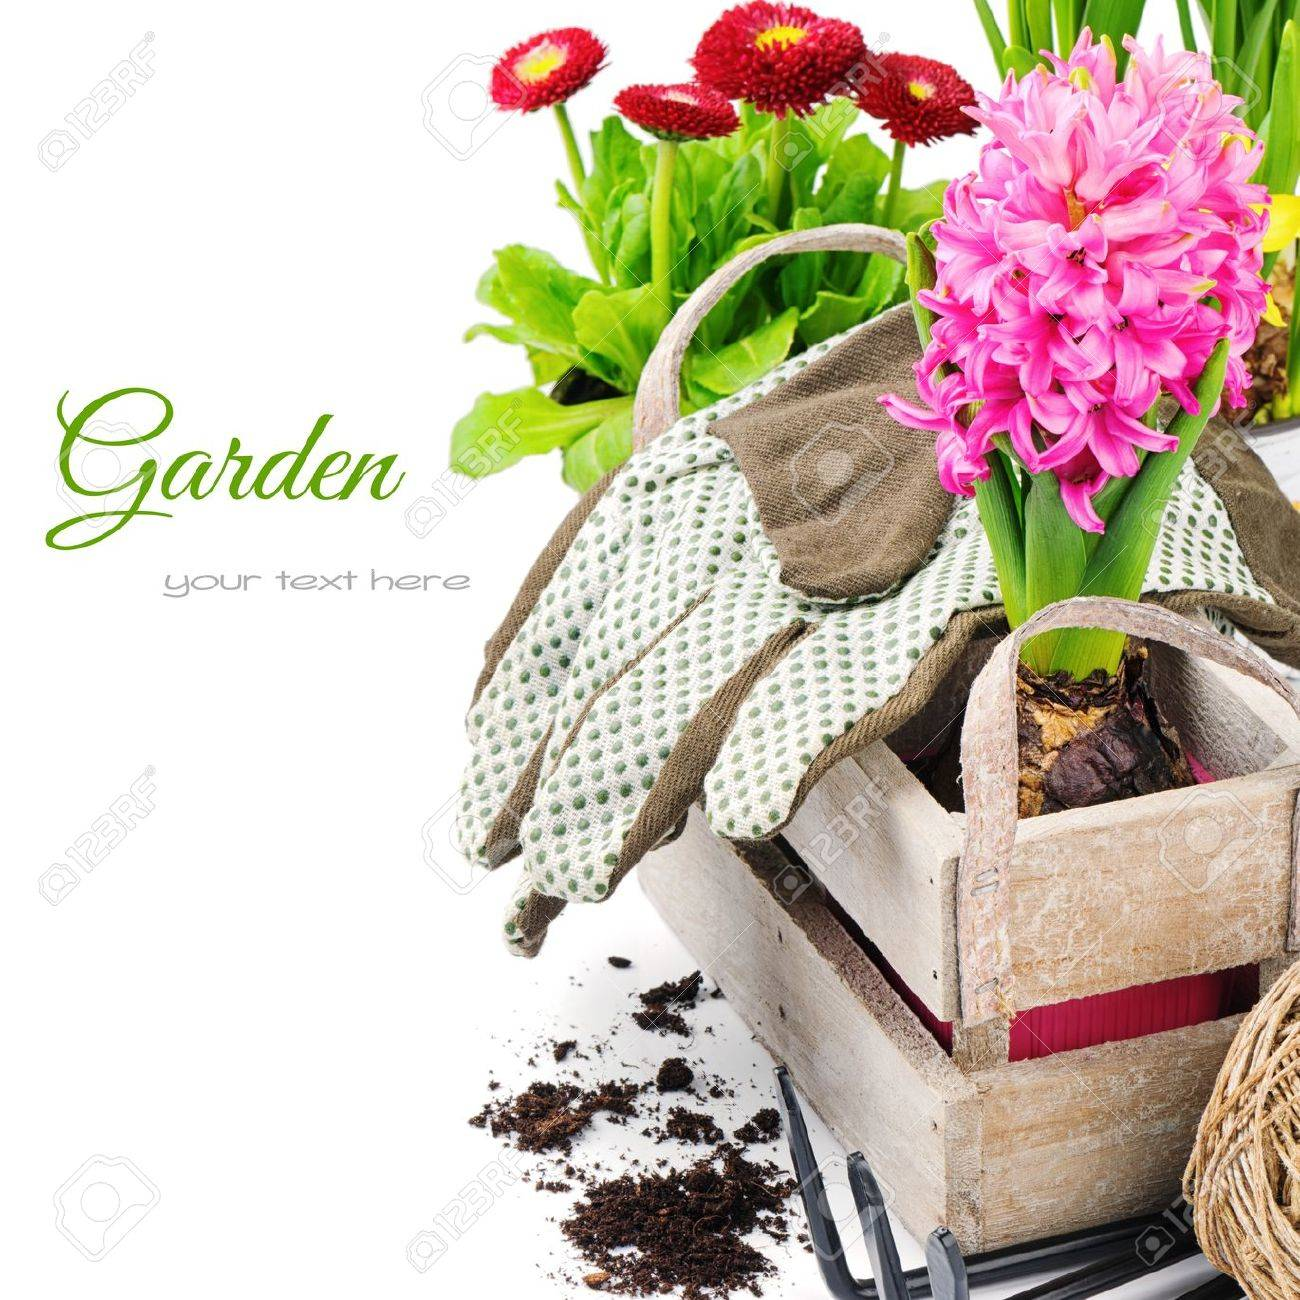 Colorful flowers and garden tools isolated over white Stock Photo - 19114238